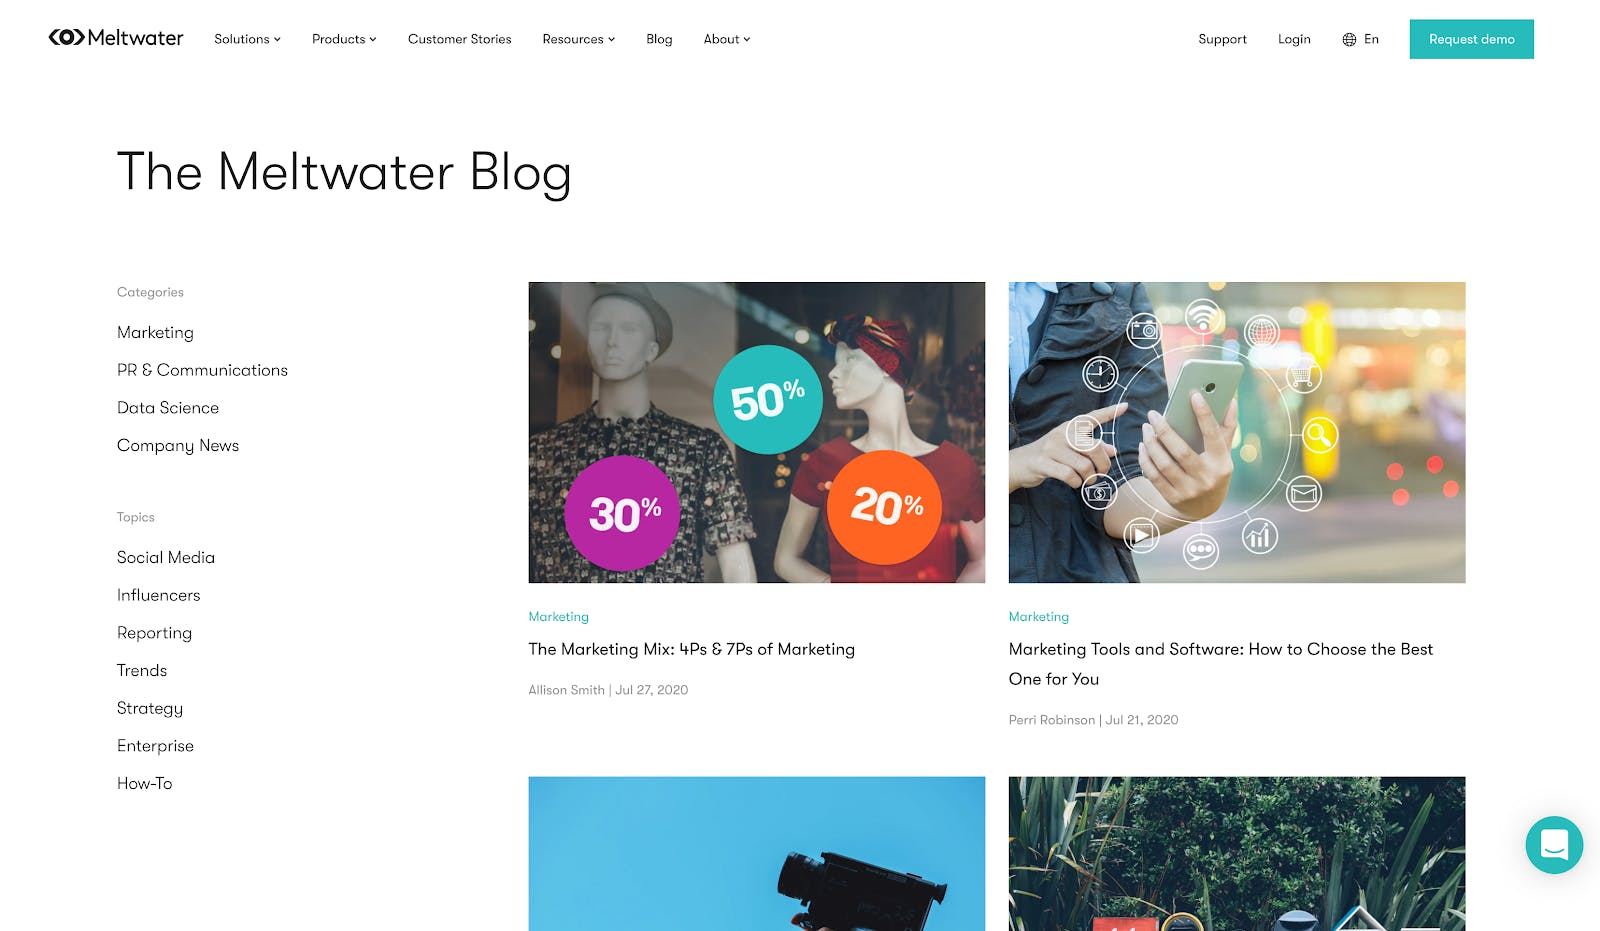 content marketing example of the Meltwater blog